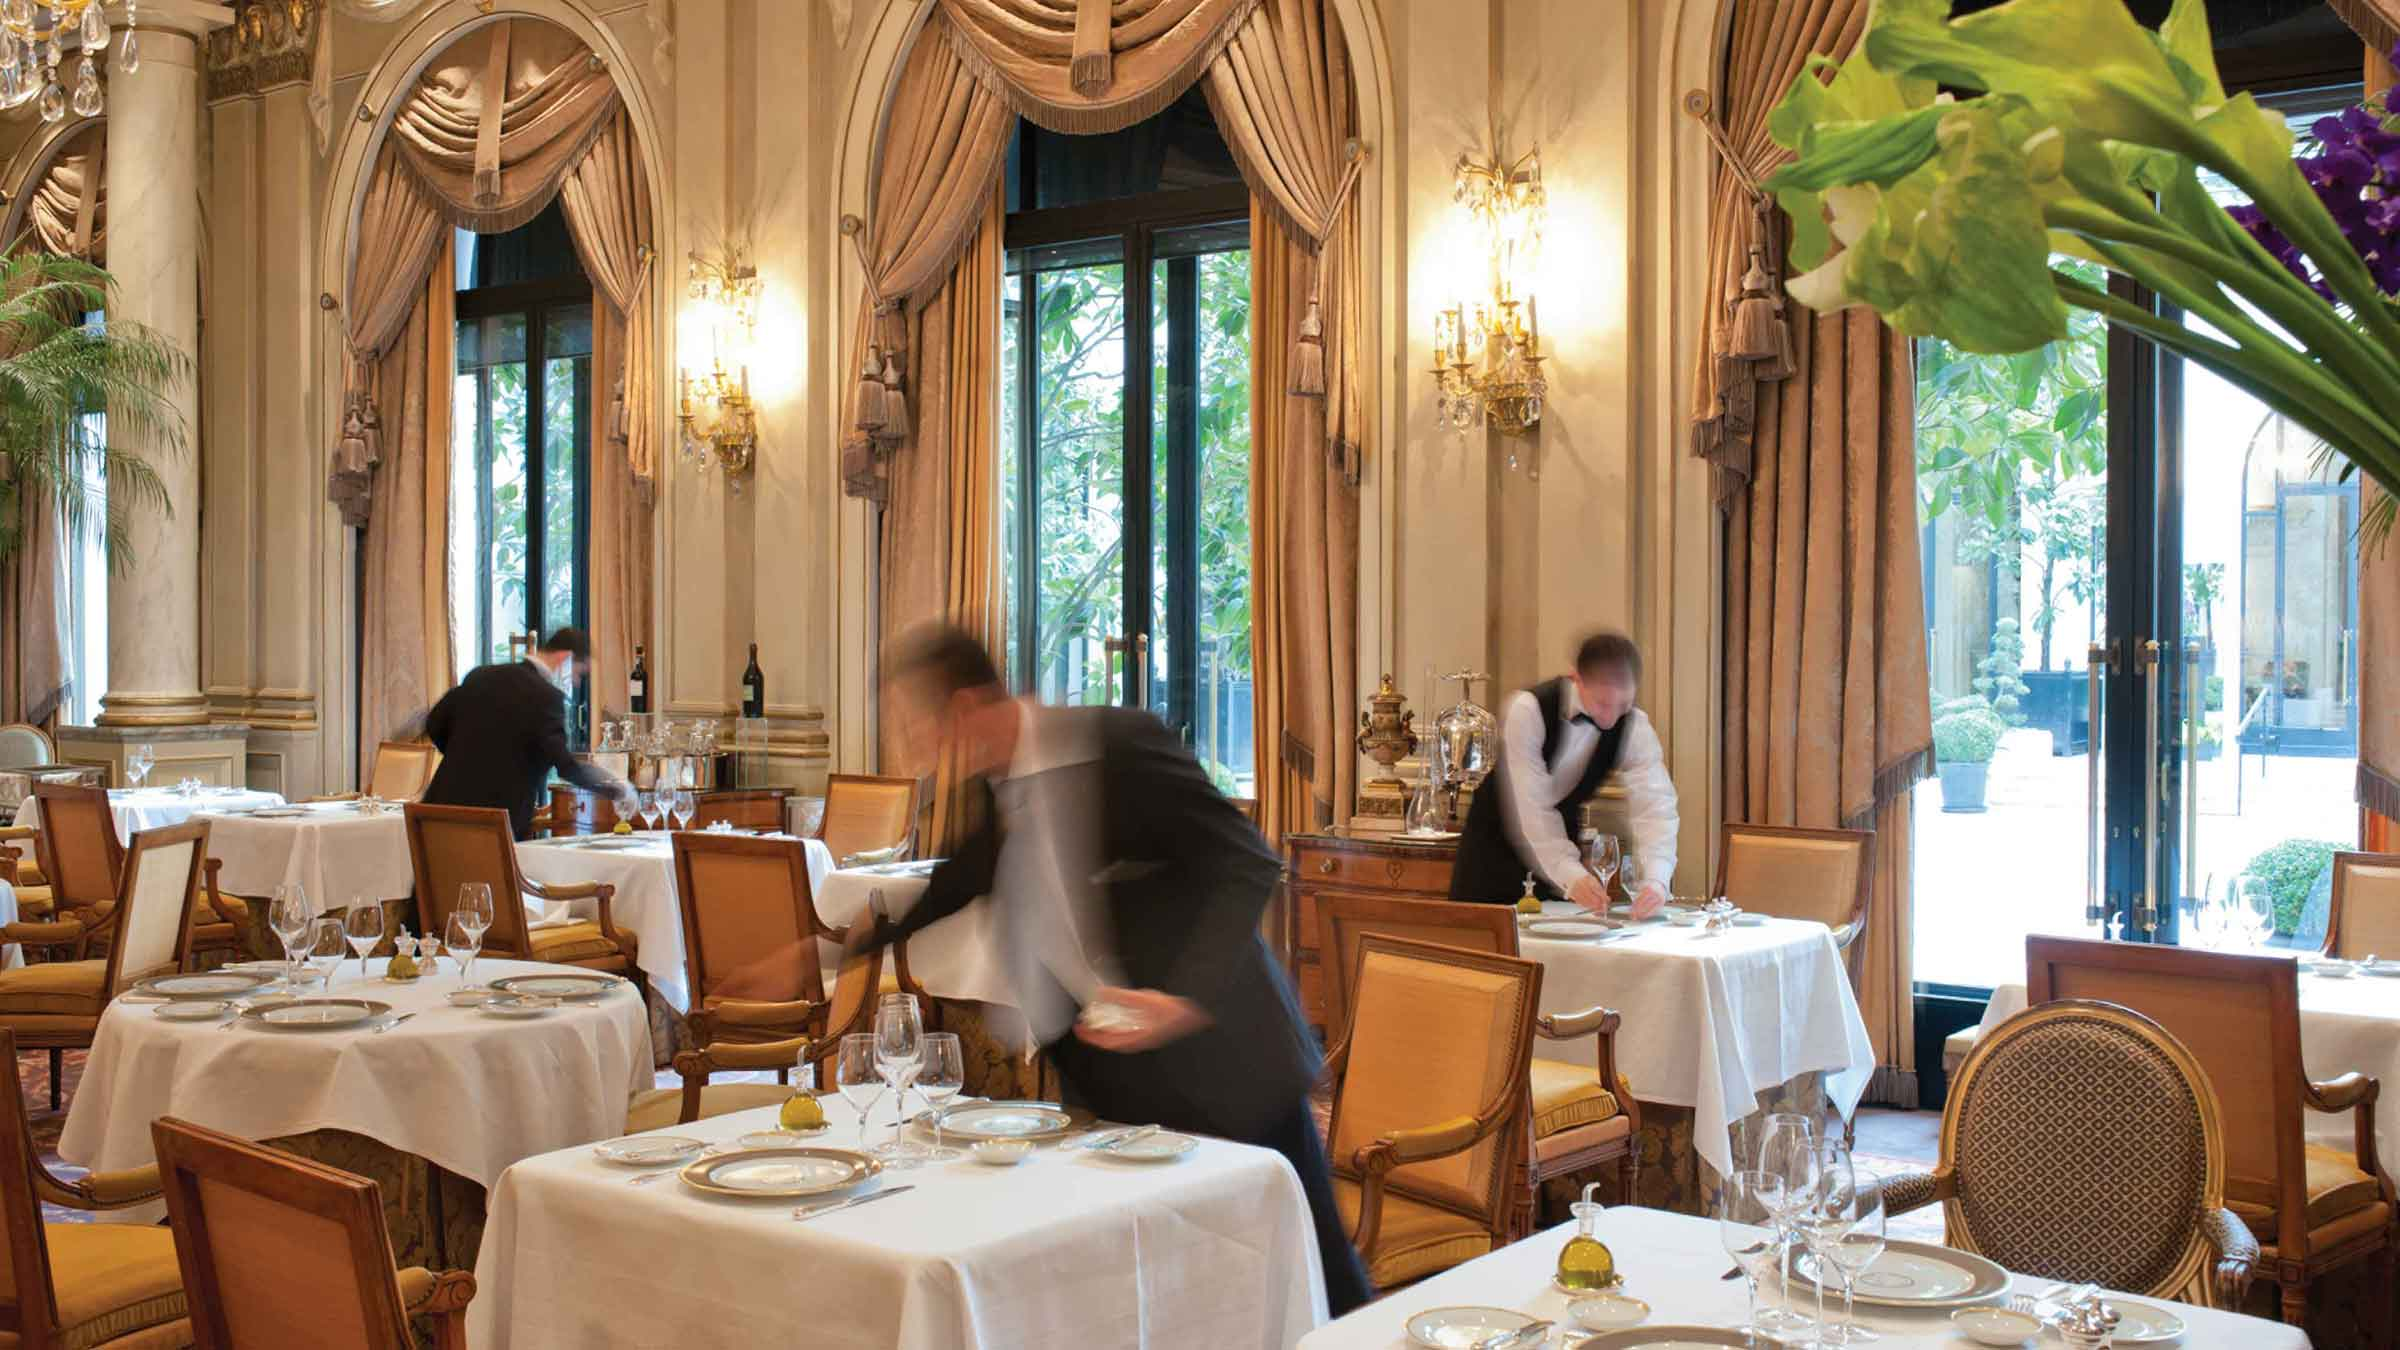 Waiters prepare the dining room at Le Cinq restaurant at Four Seasons Hotel George V—Paris, France